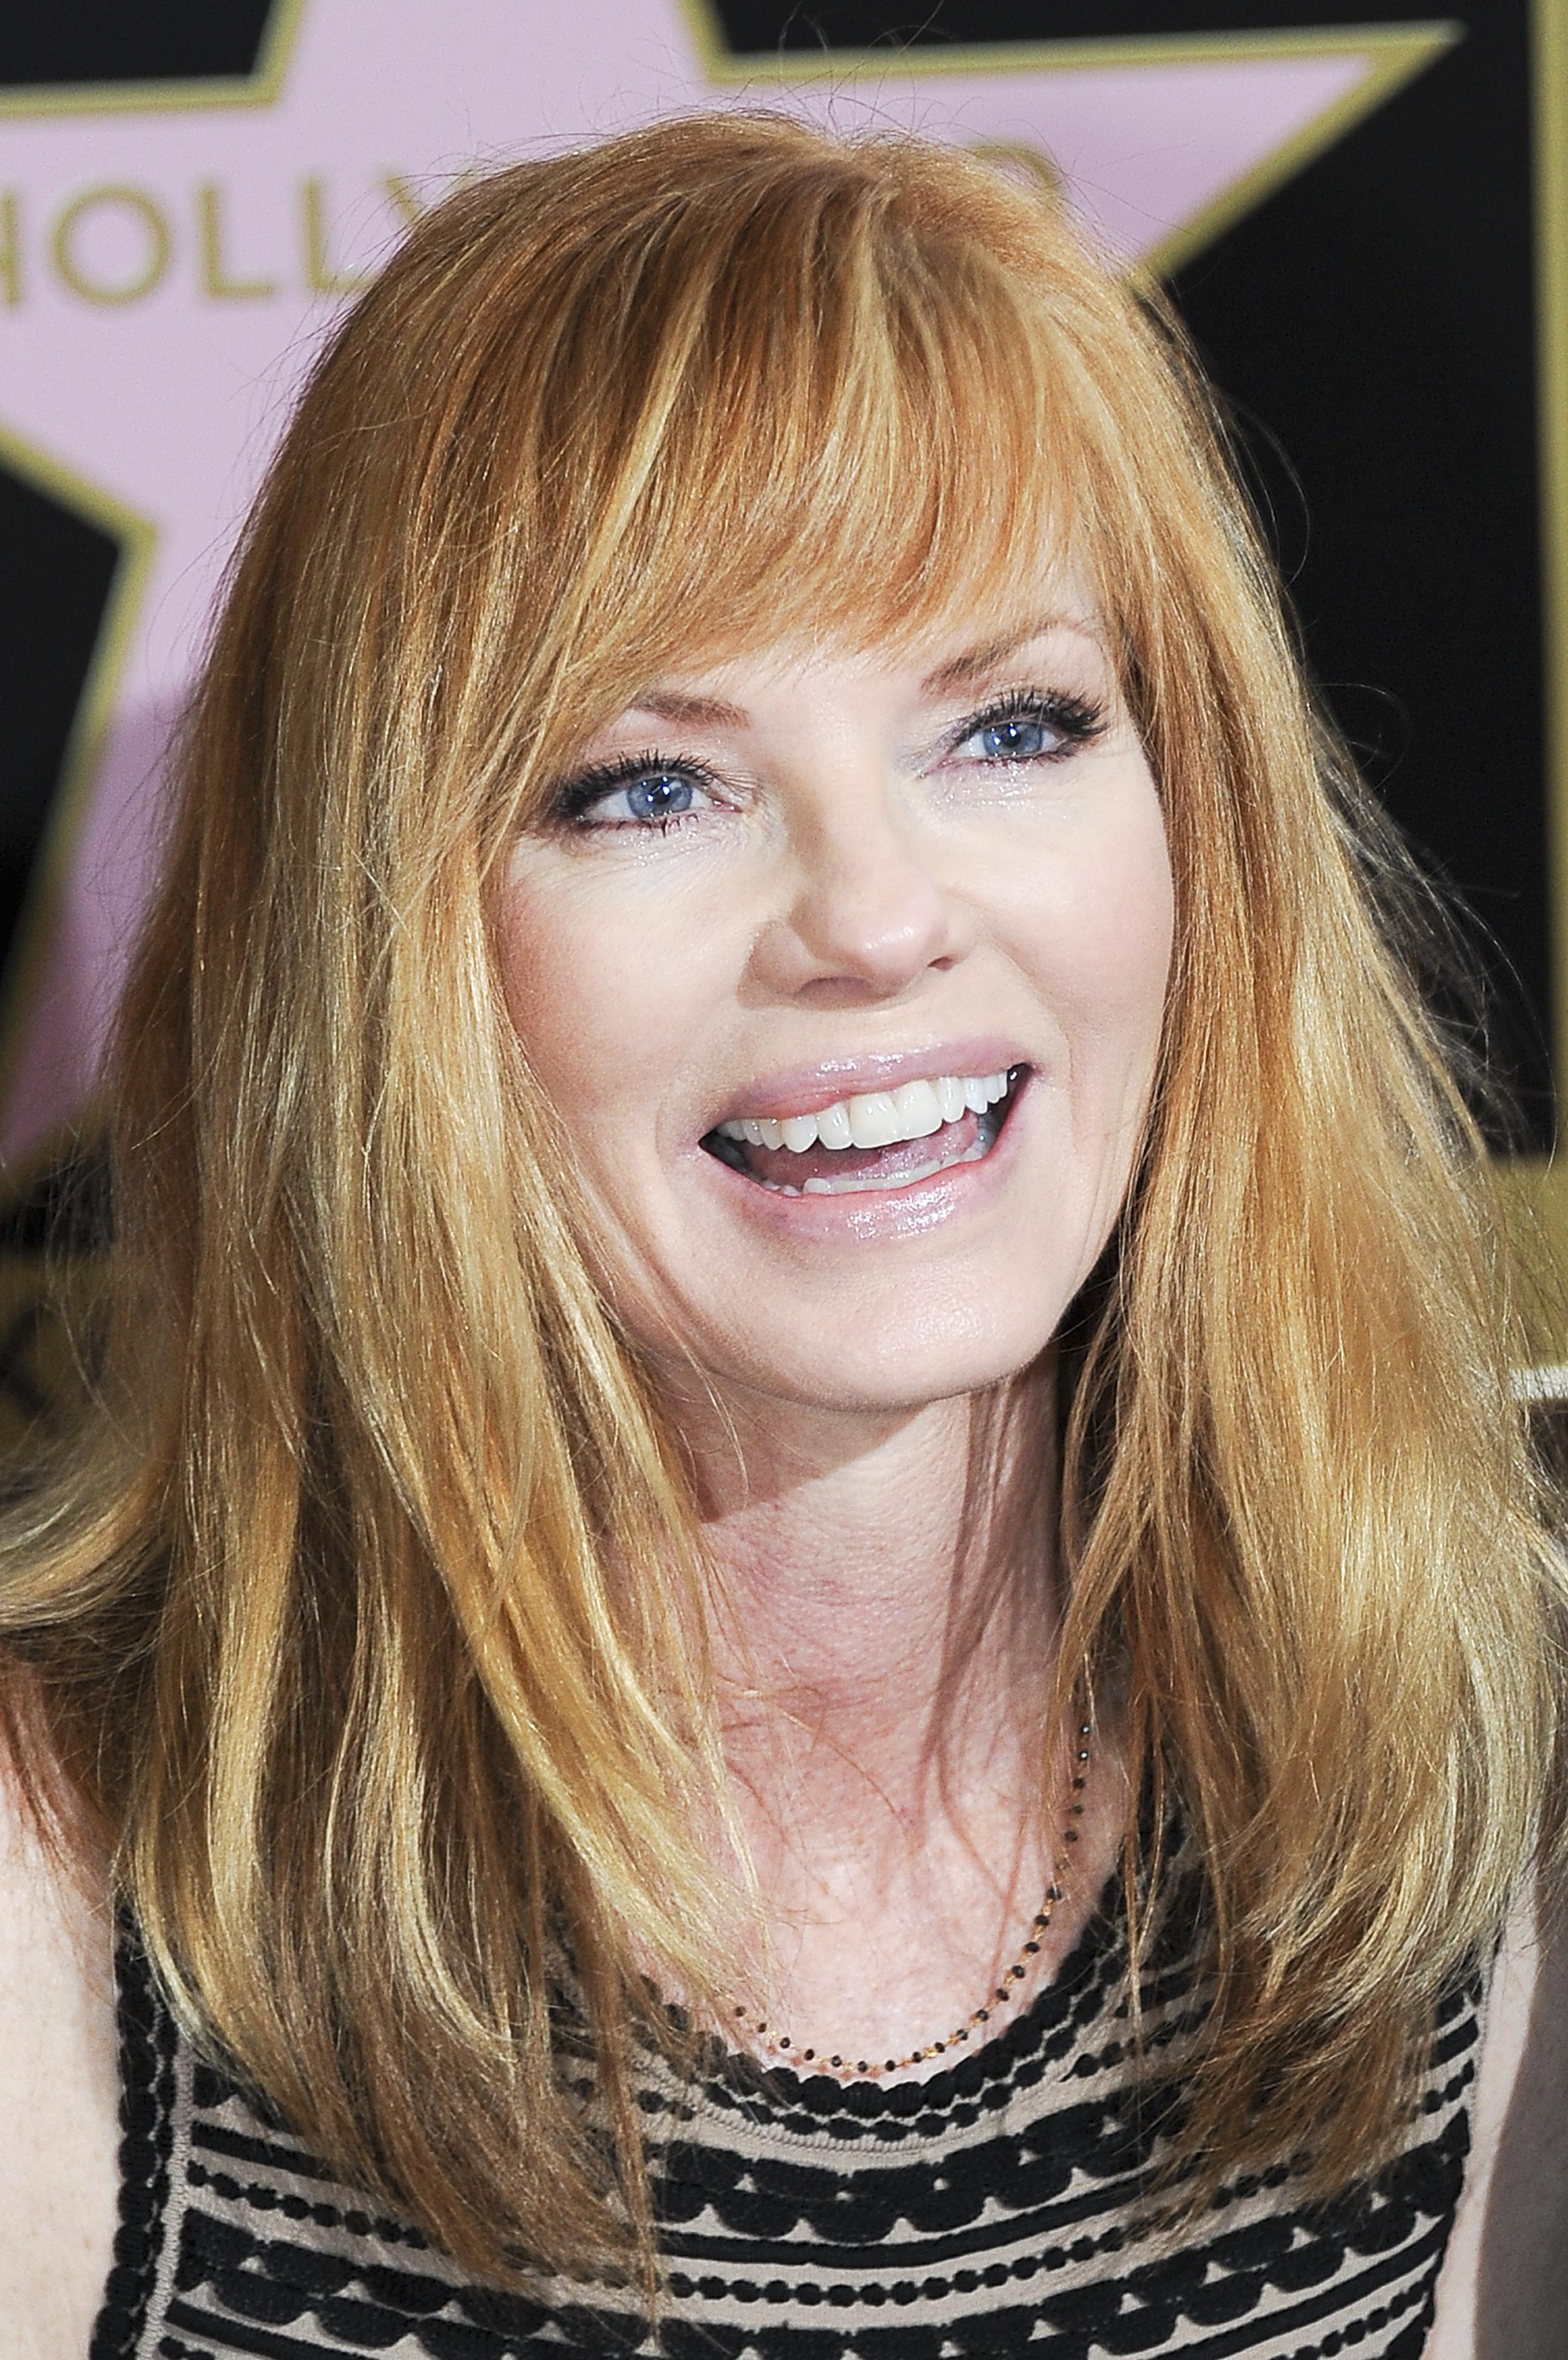 Marg Helgenberger As Catherine Willows On Csi Goodbye And -1194